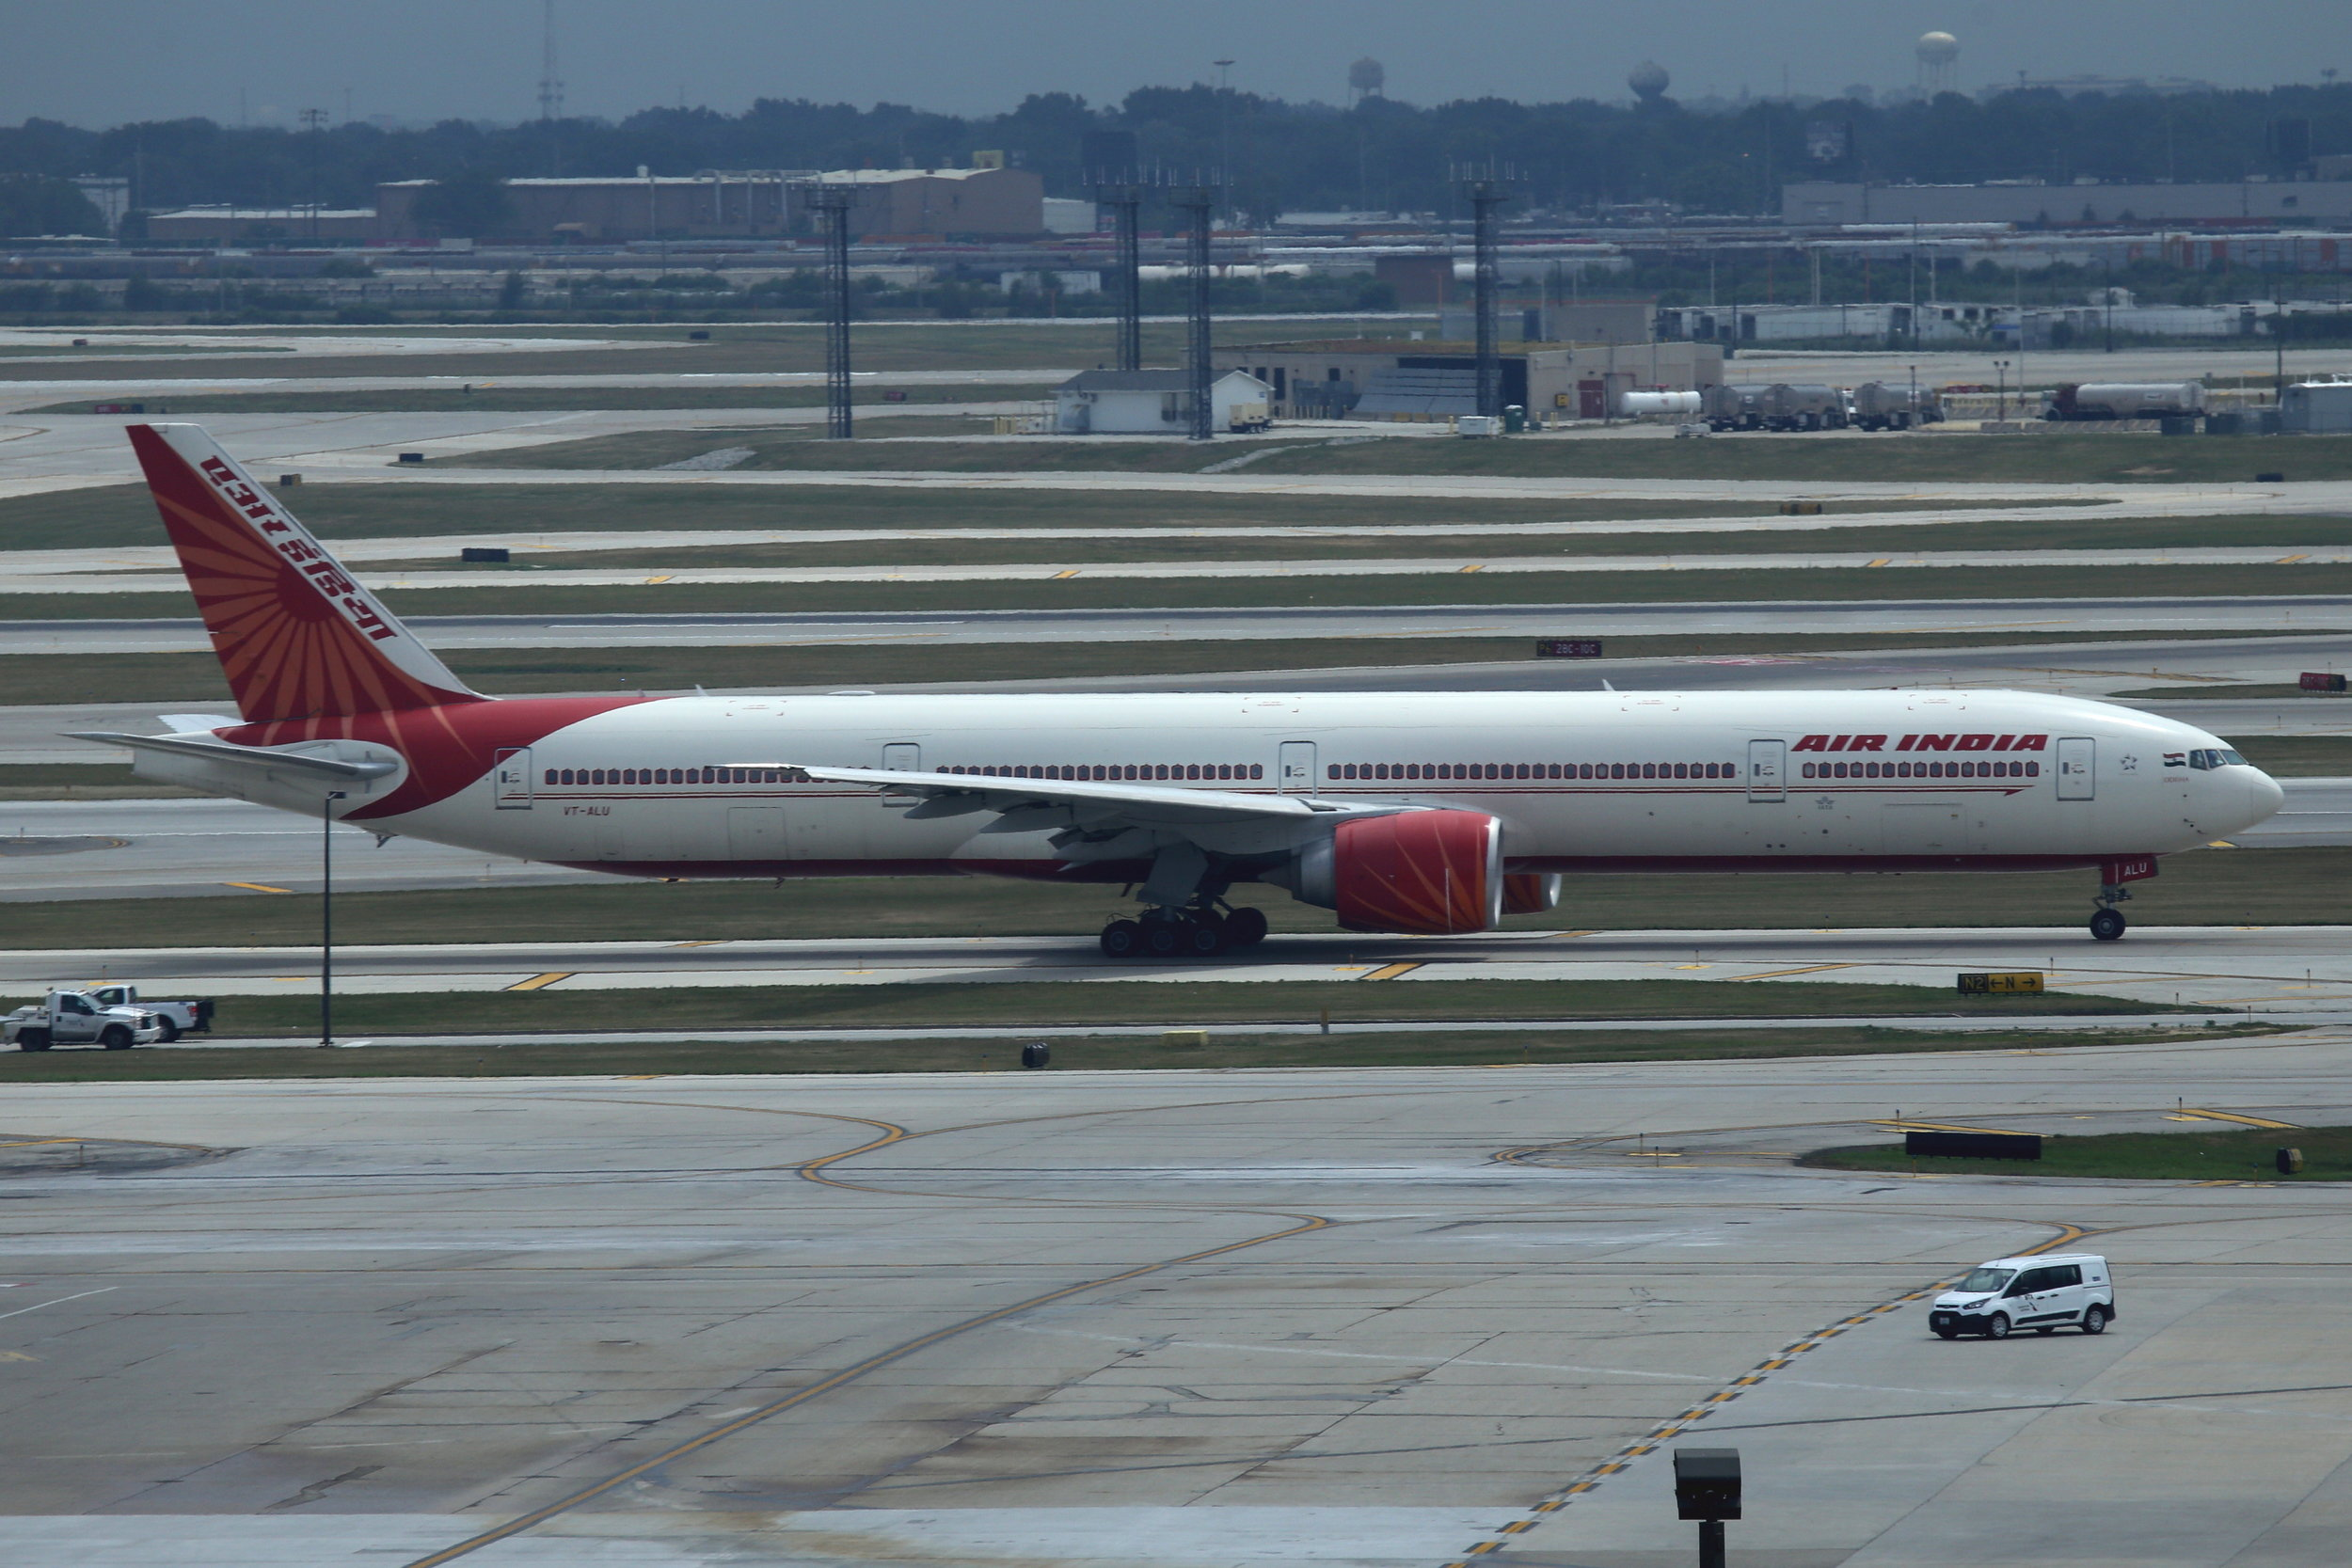 VT-ALU Air India B777-3 taken from the Hilton Hotel at Chicago O'Hare Airport 21st July 2018 by John Wood